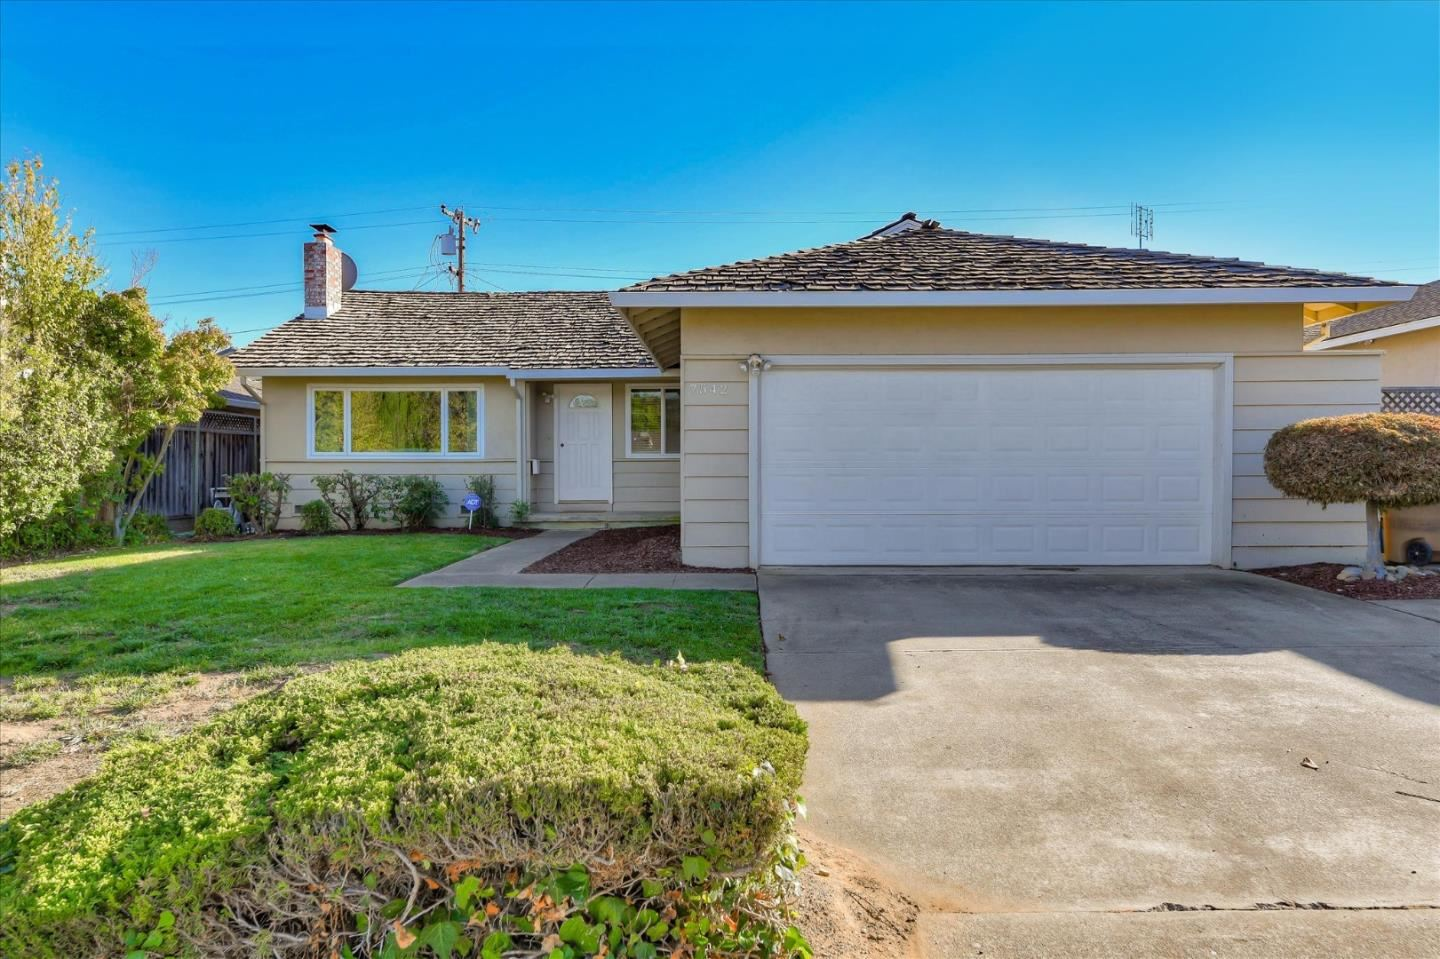 Photo for 7542 Rainbow DR, CUPERTINO, CA 95014 (MLS # ML81815687)